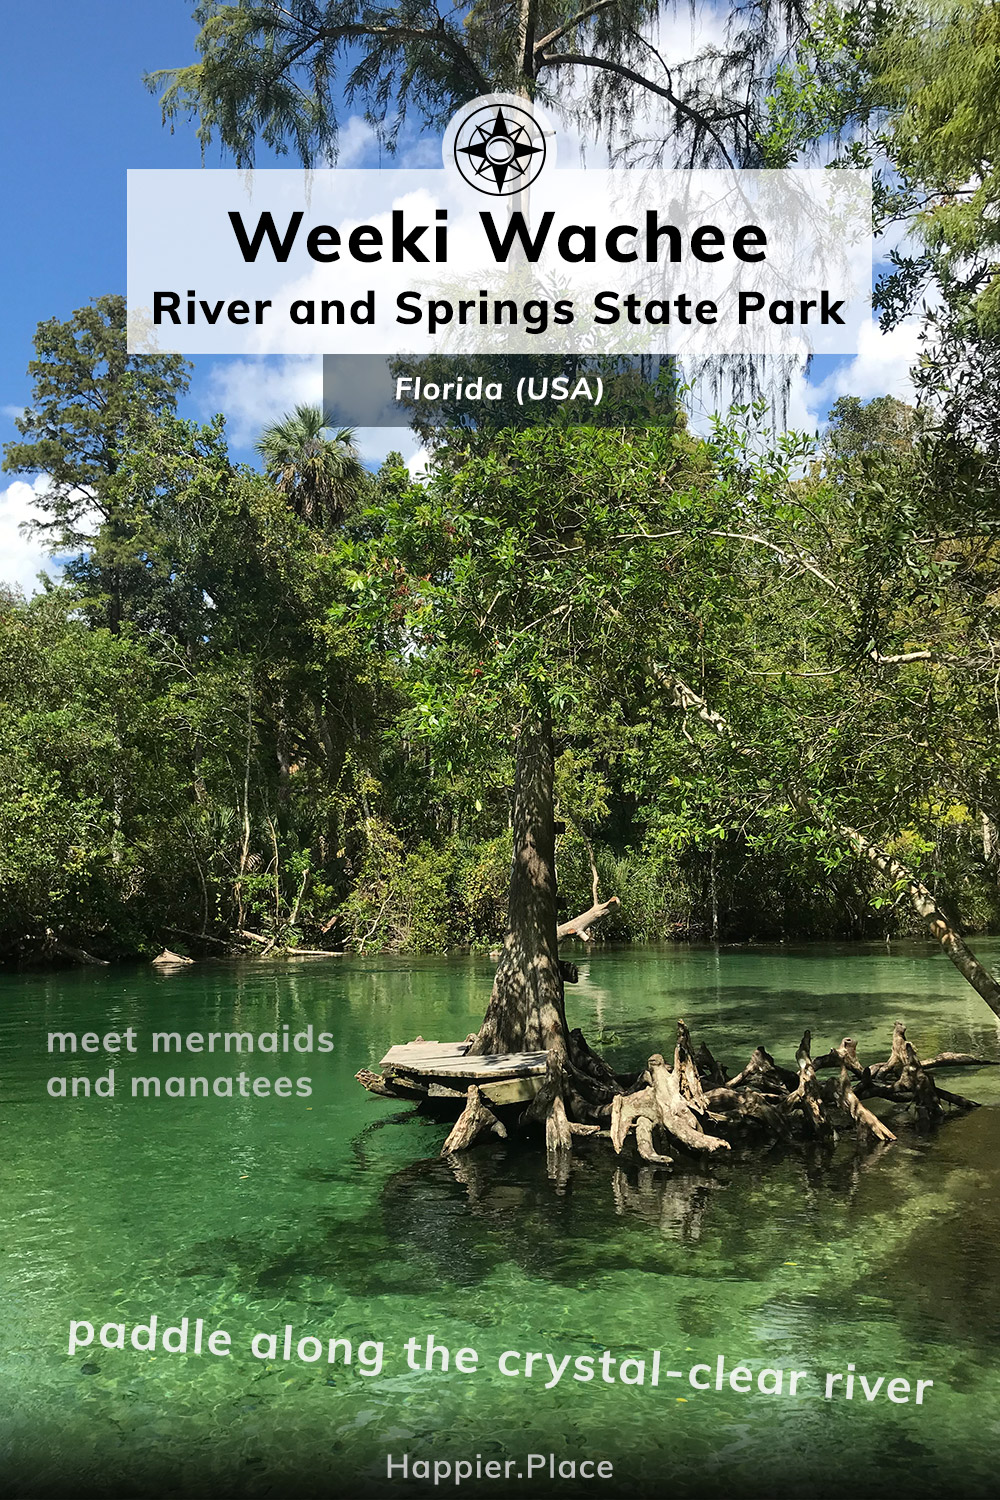 Weeki Wachee River and Springs State Park, Meet mermaids and manatees, paddle down a crystal clear river in Florida